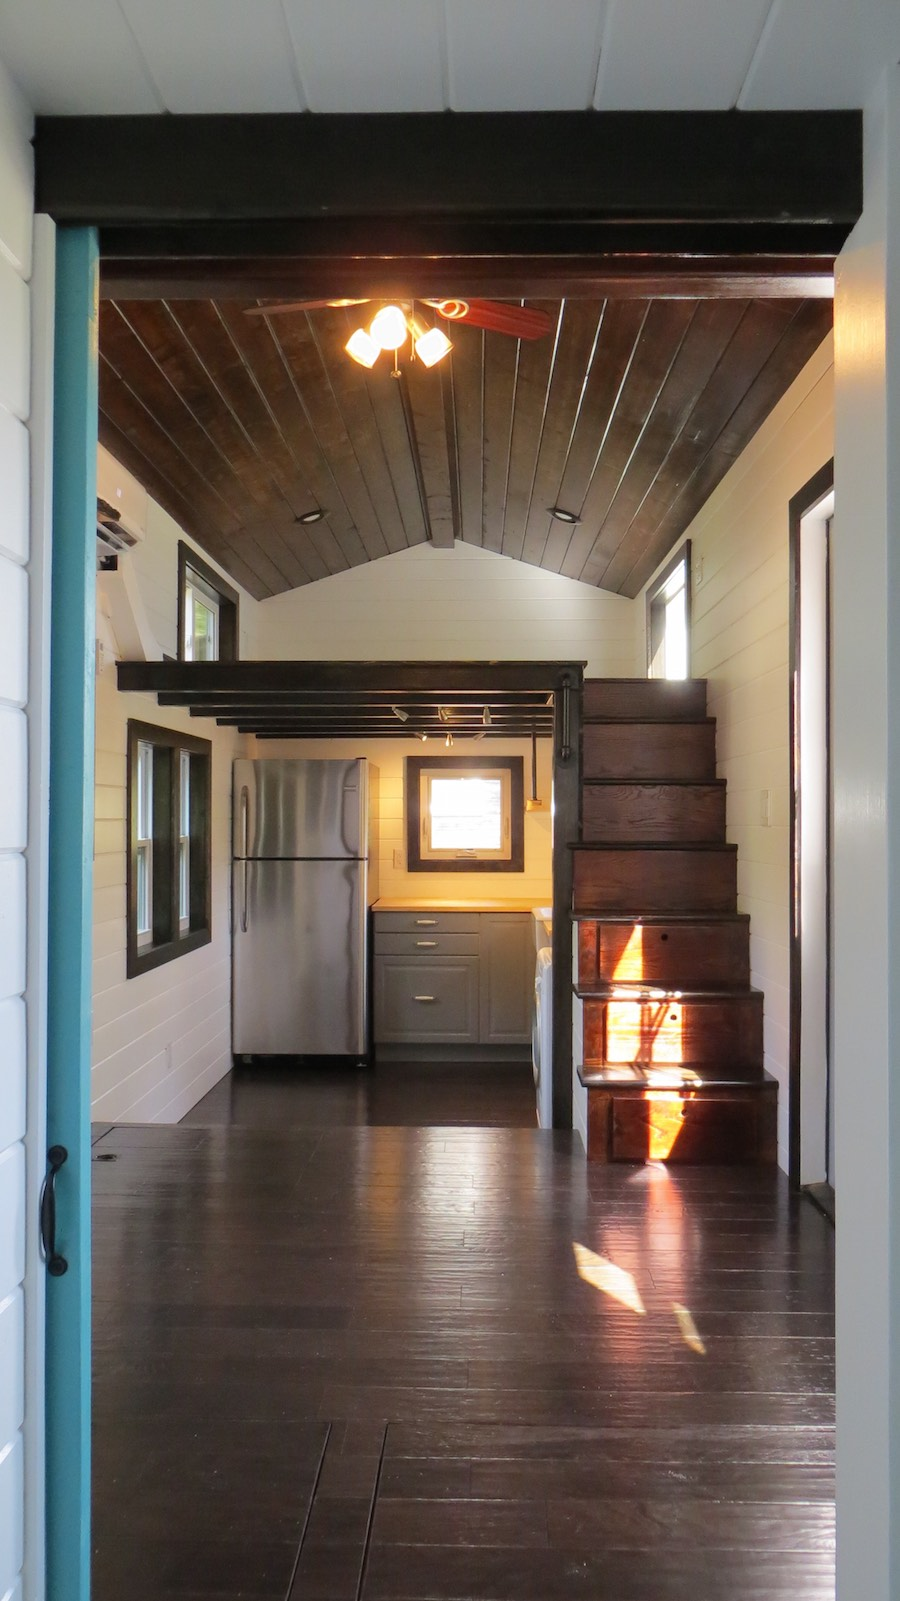 36 North - Tiny House Swoon